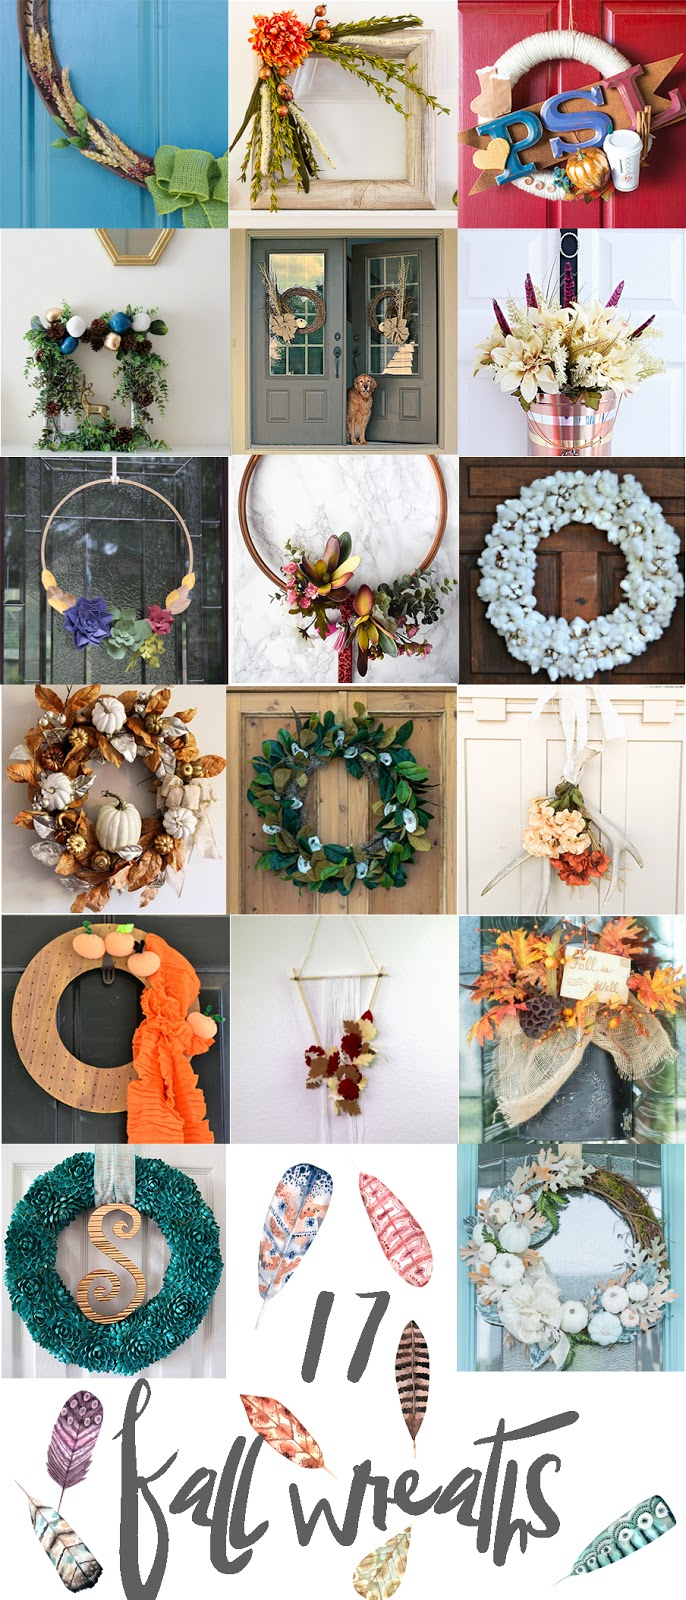 Fall wreath blog hop- lots of great DIY tutorials!